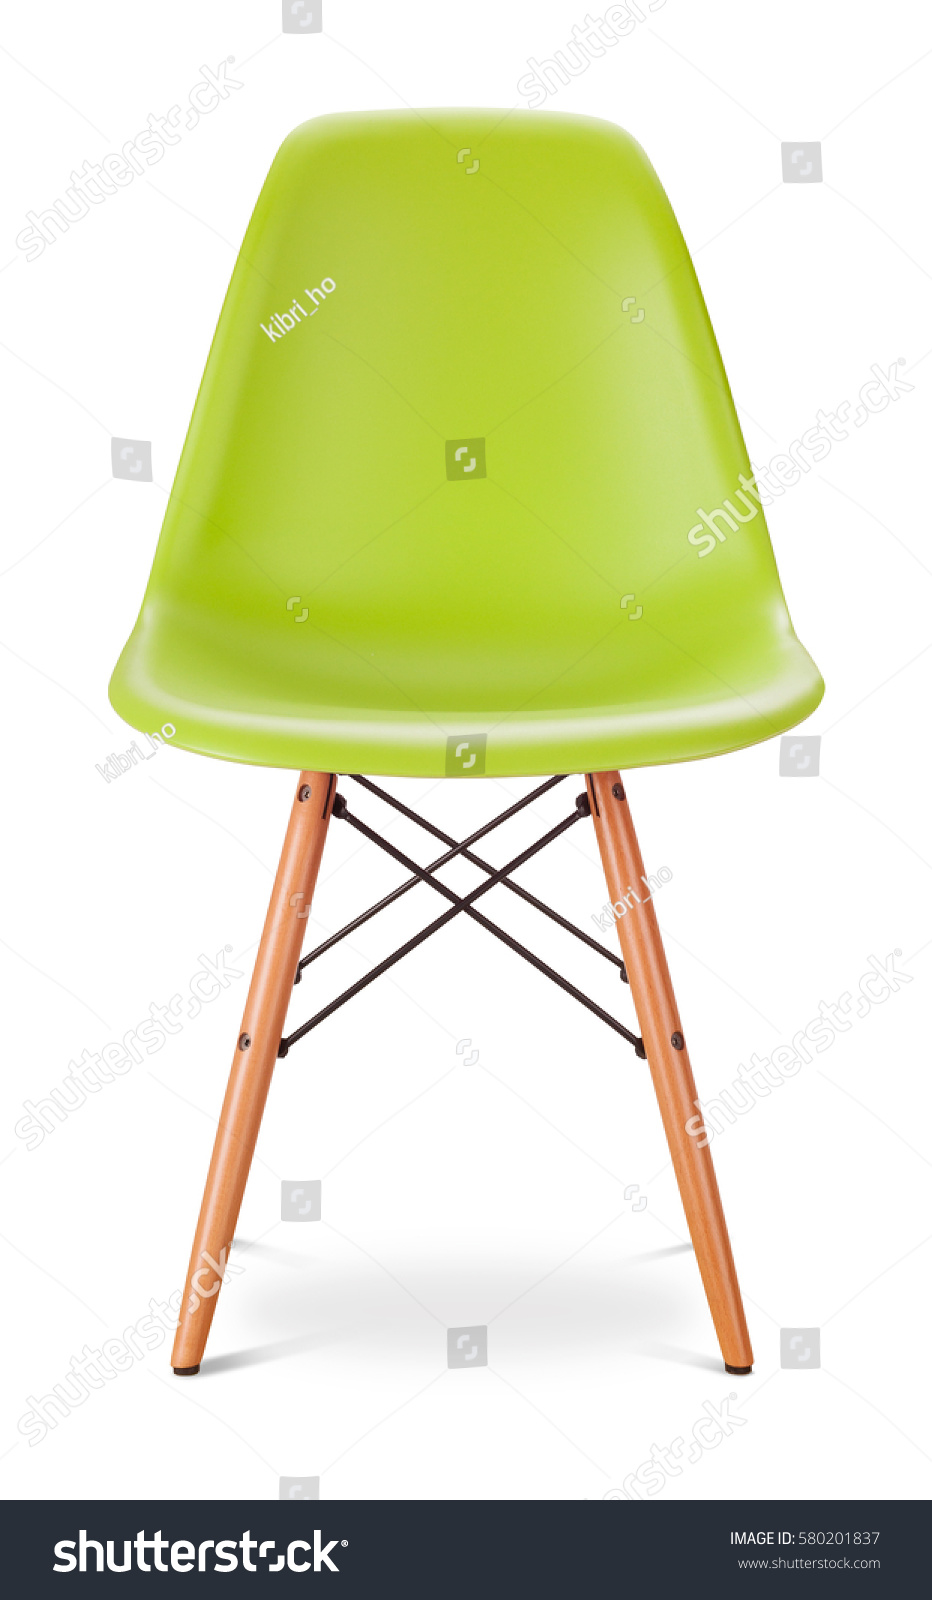 Green color chair, modern designer, chair isolated on white background.  #580201837